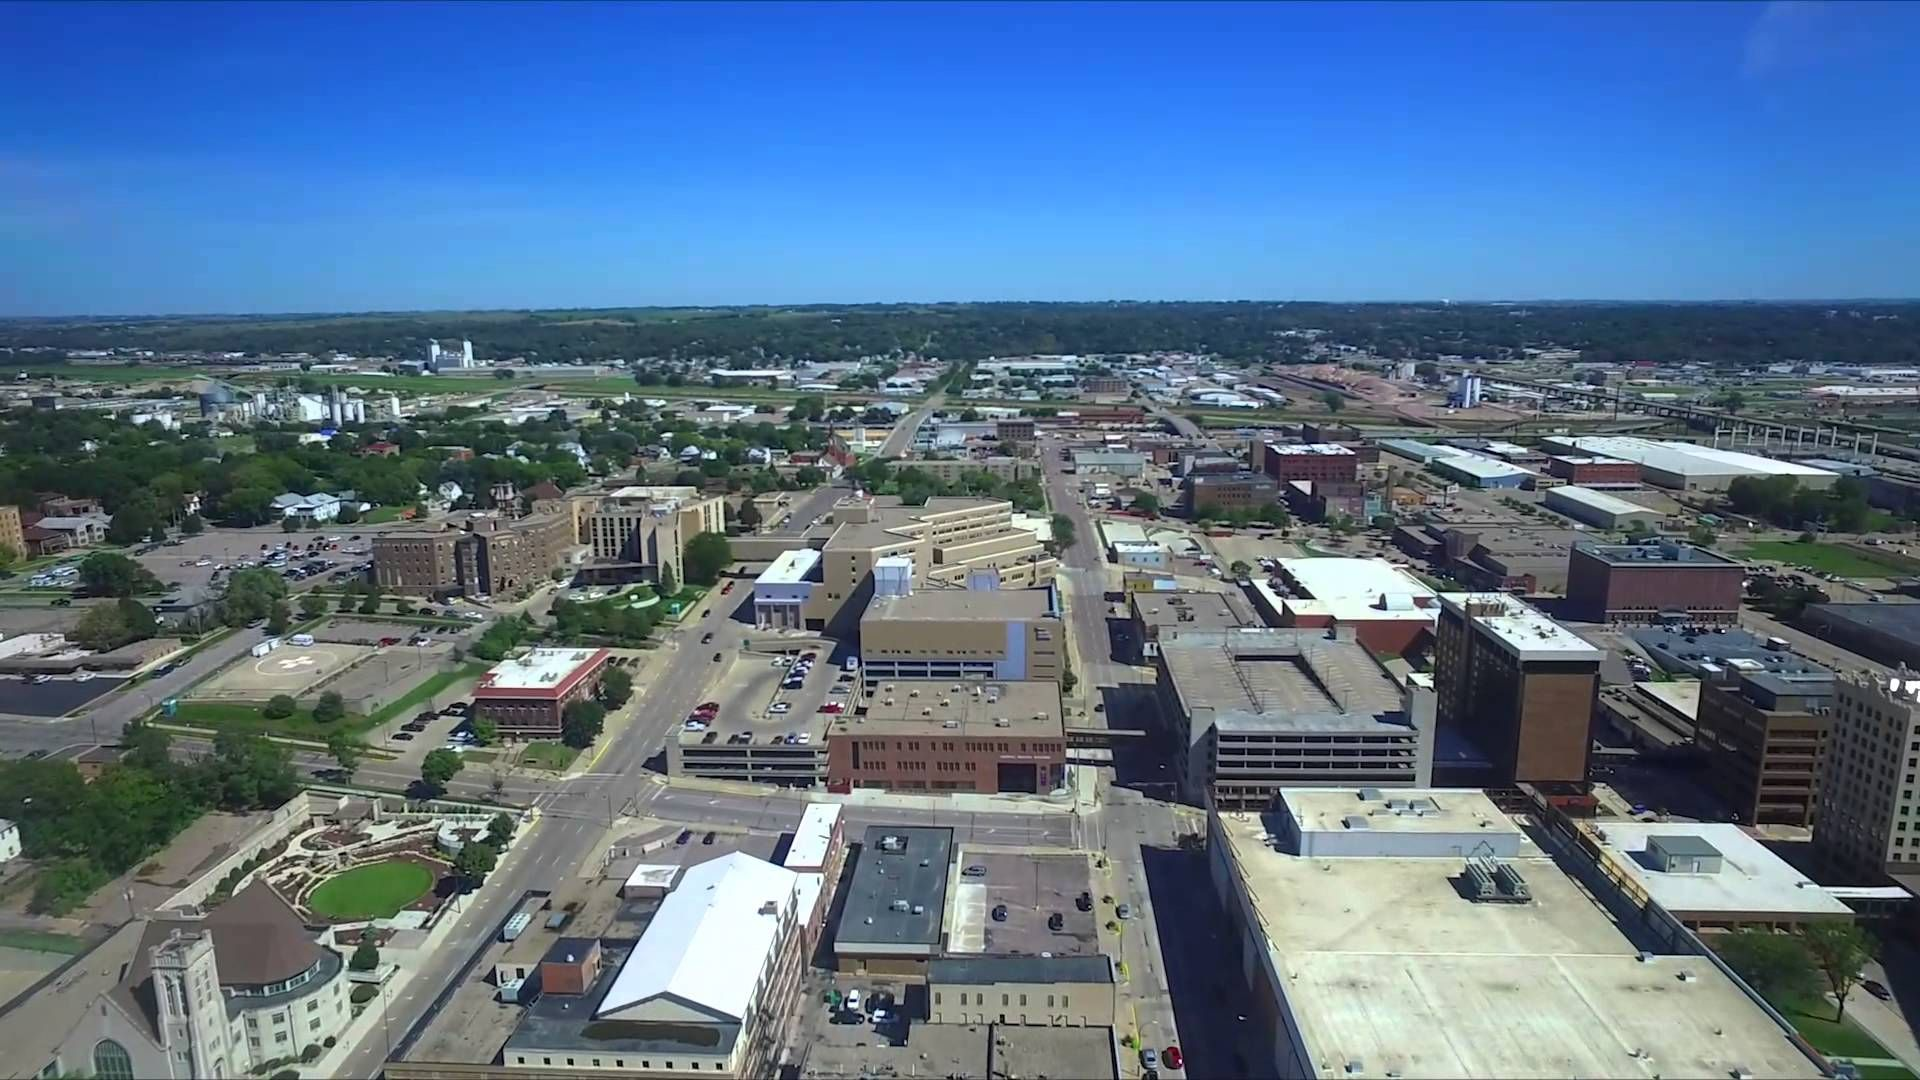 Drone Flight 9 12 15 Sioux City Downtown With Images Sioux